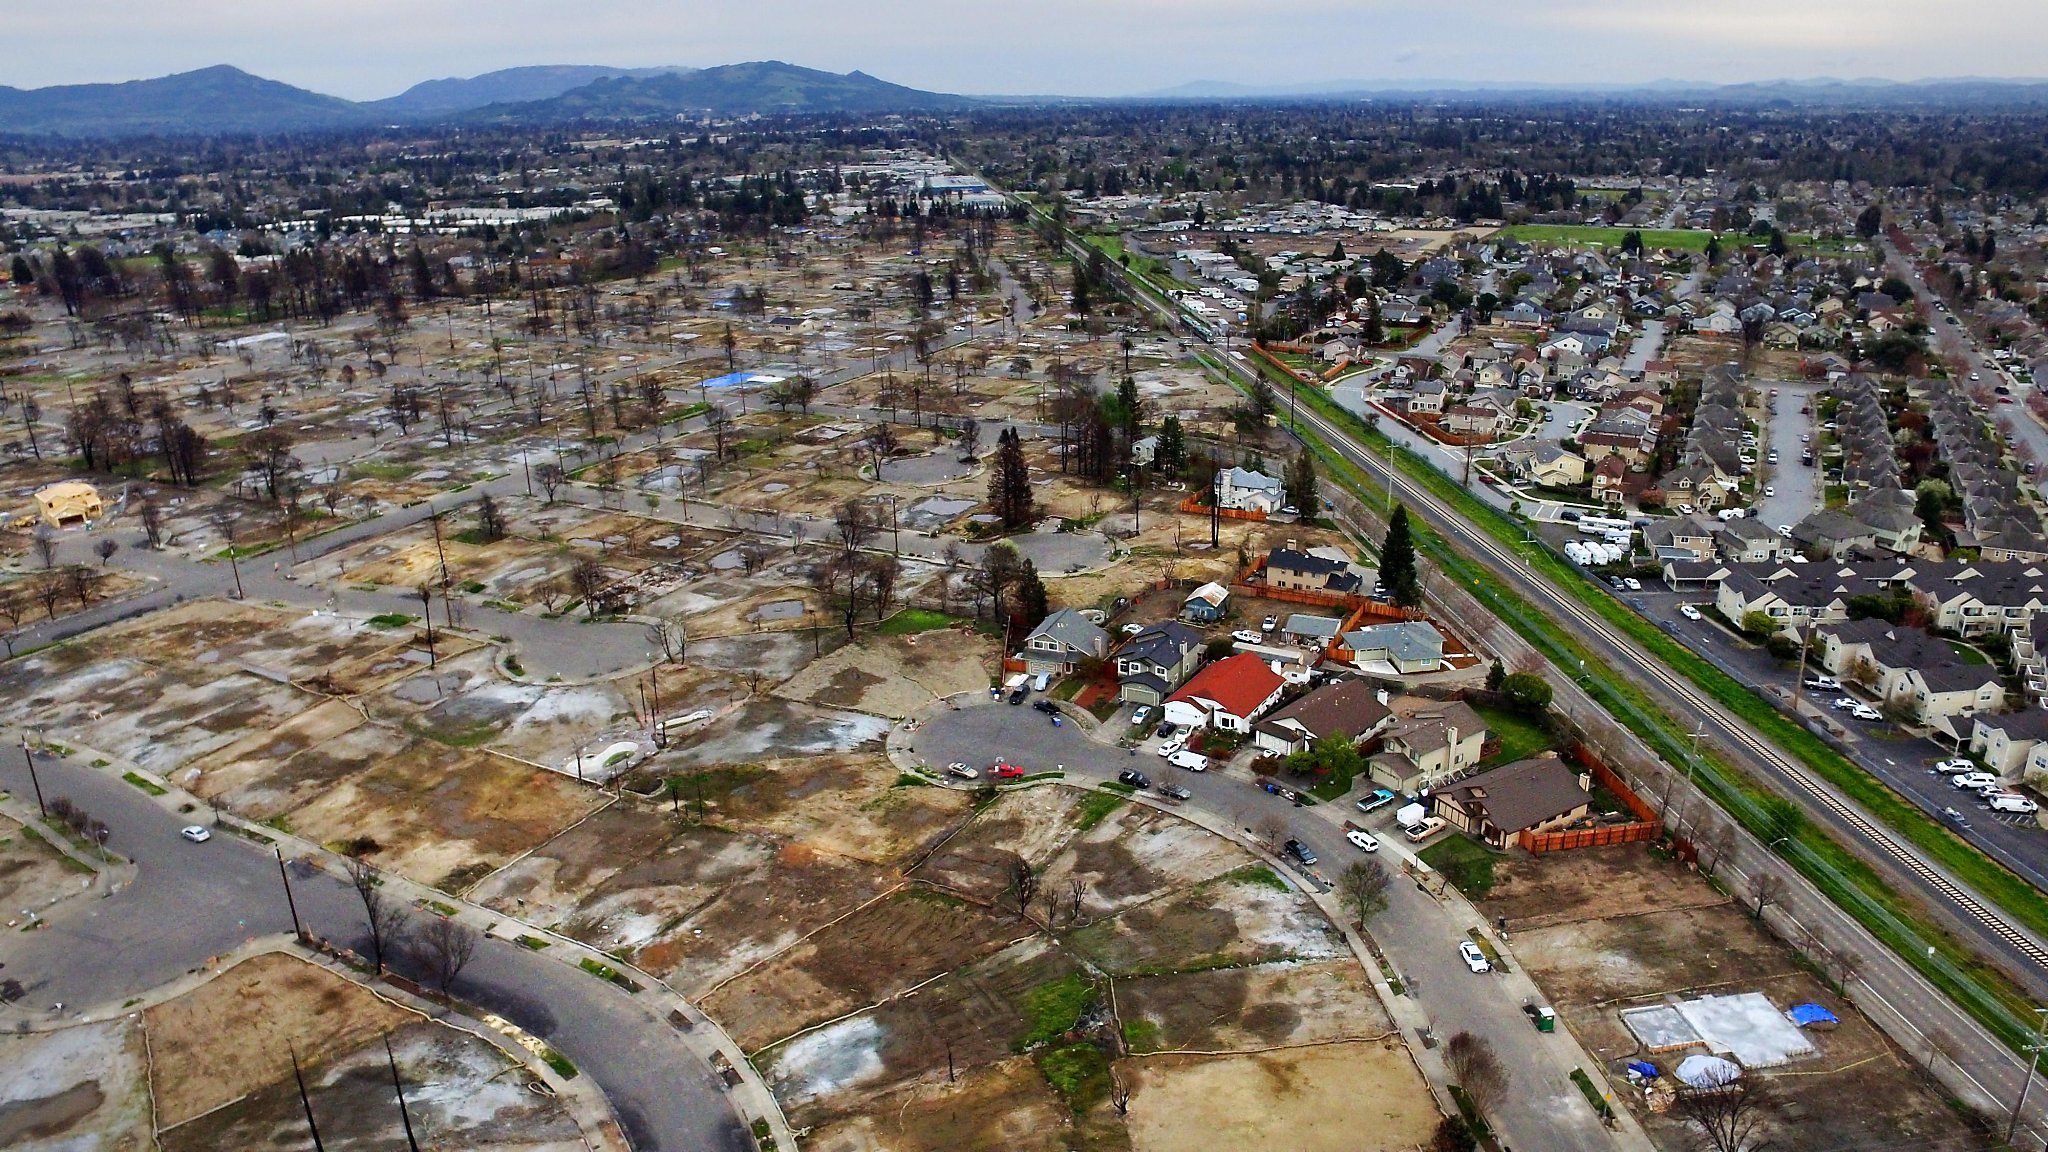 6 Months After The Wildfires Flames Extinguished But North Bays Scars Arent Healing